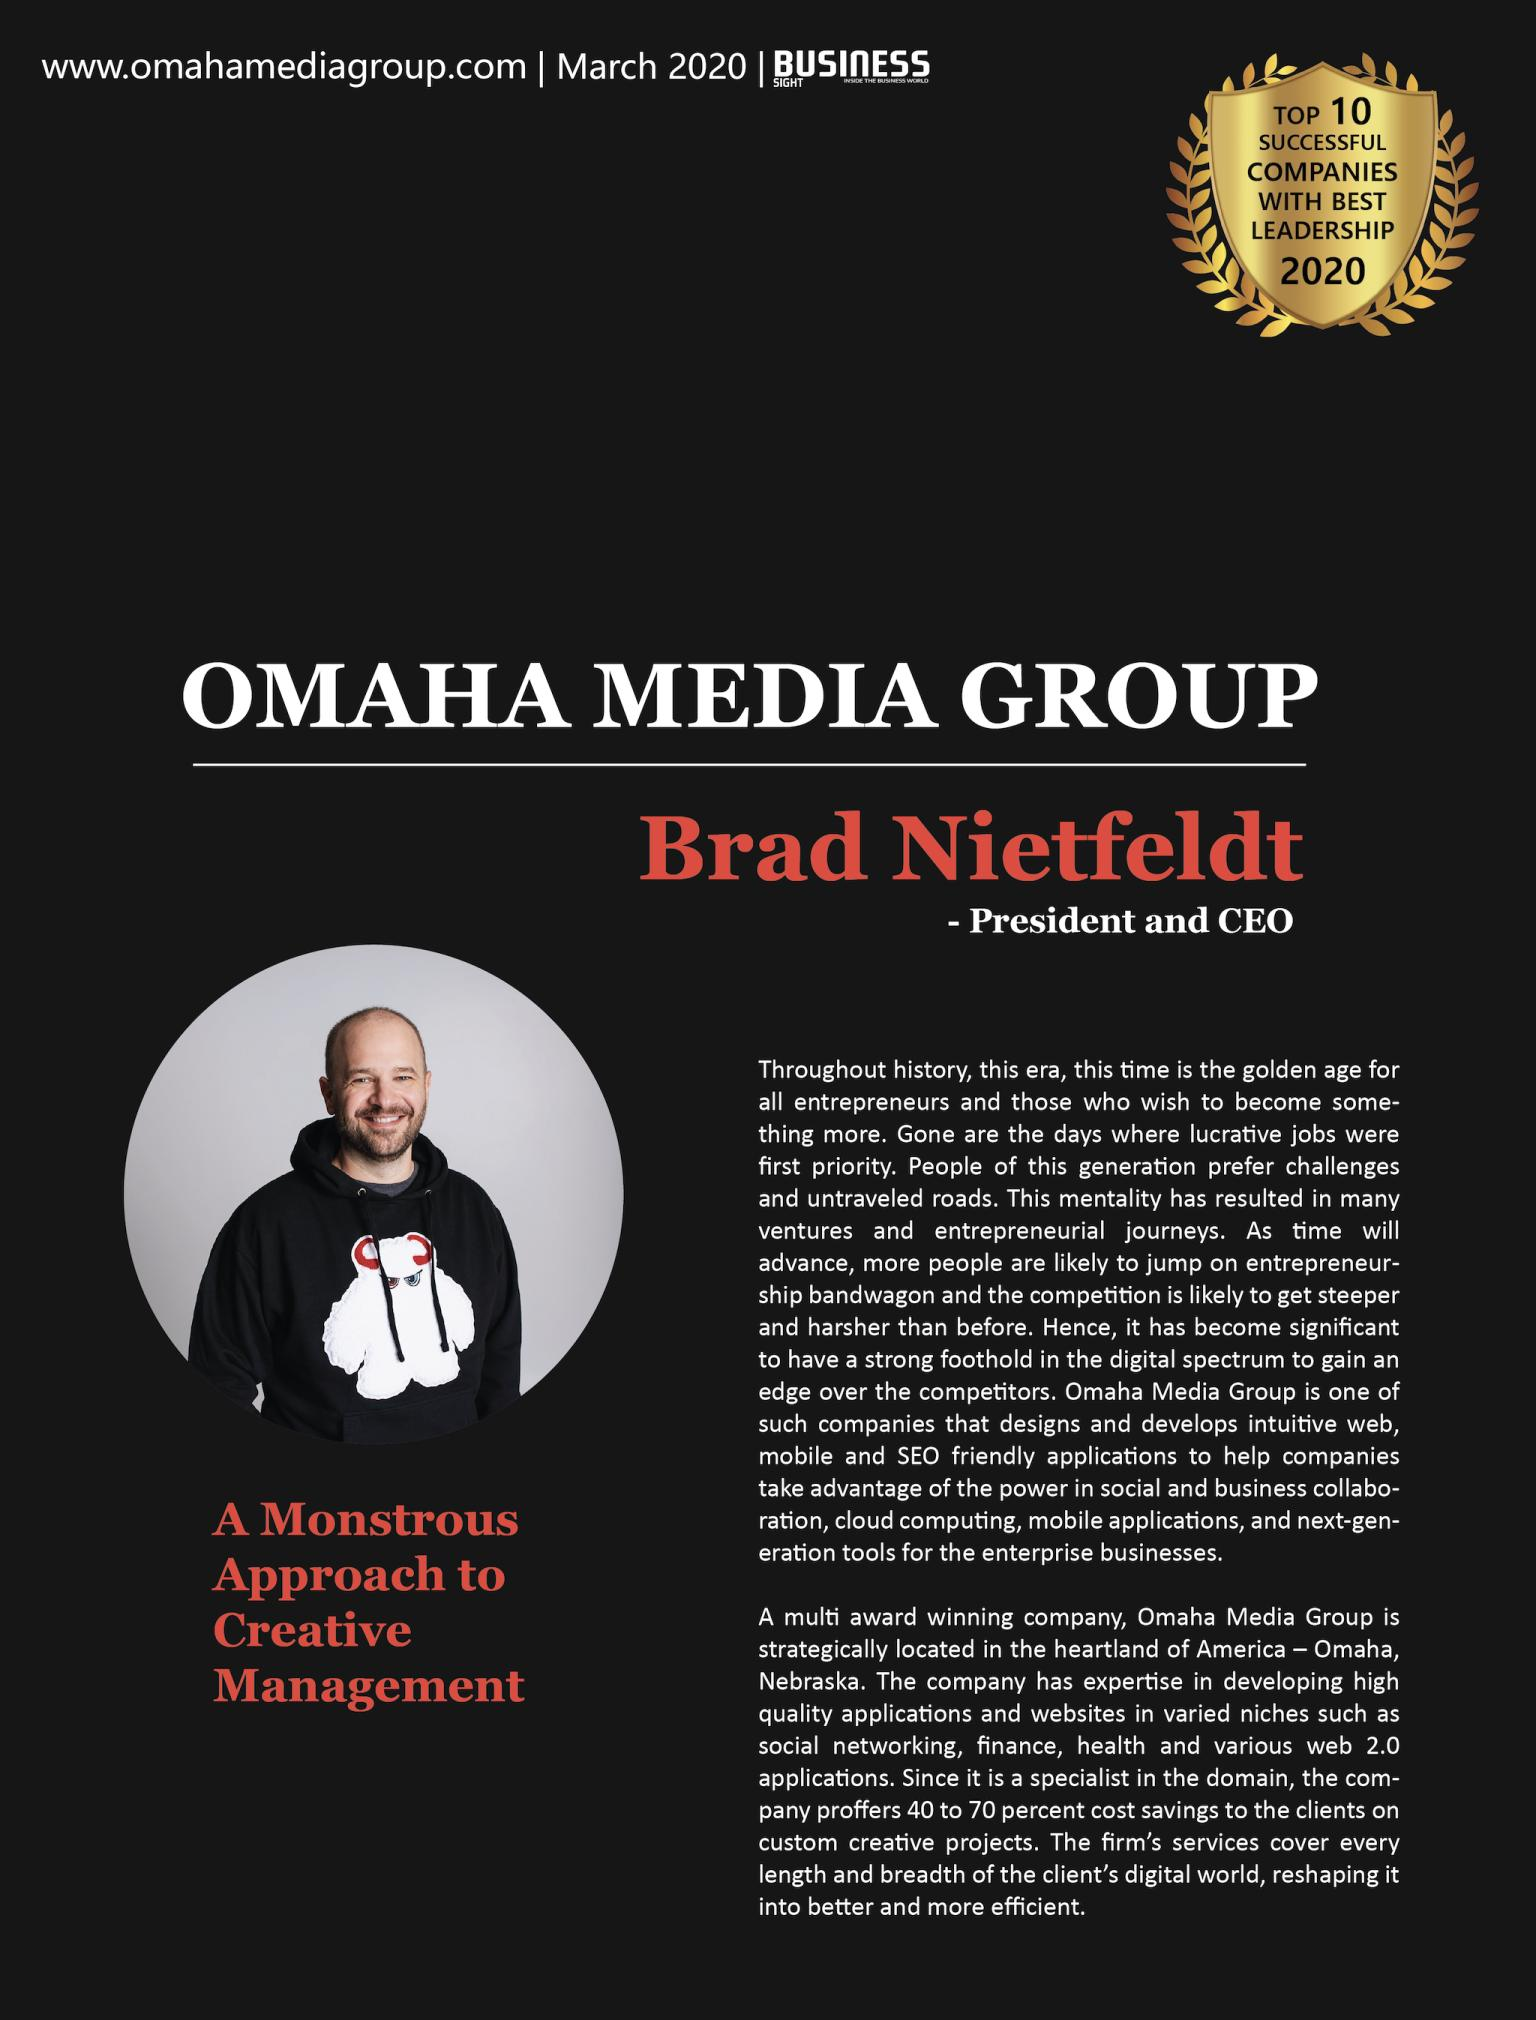 Brad Nietfeldt Top Ten Business Leadership Companies